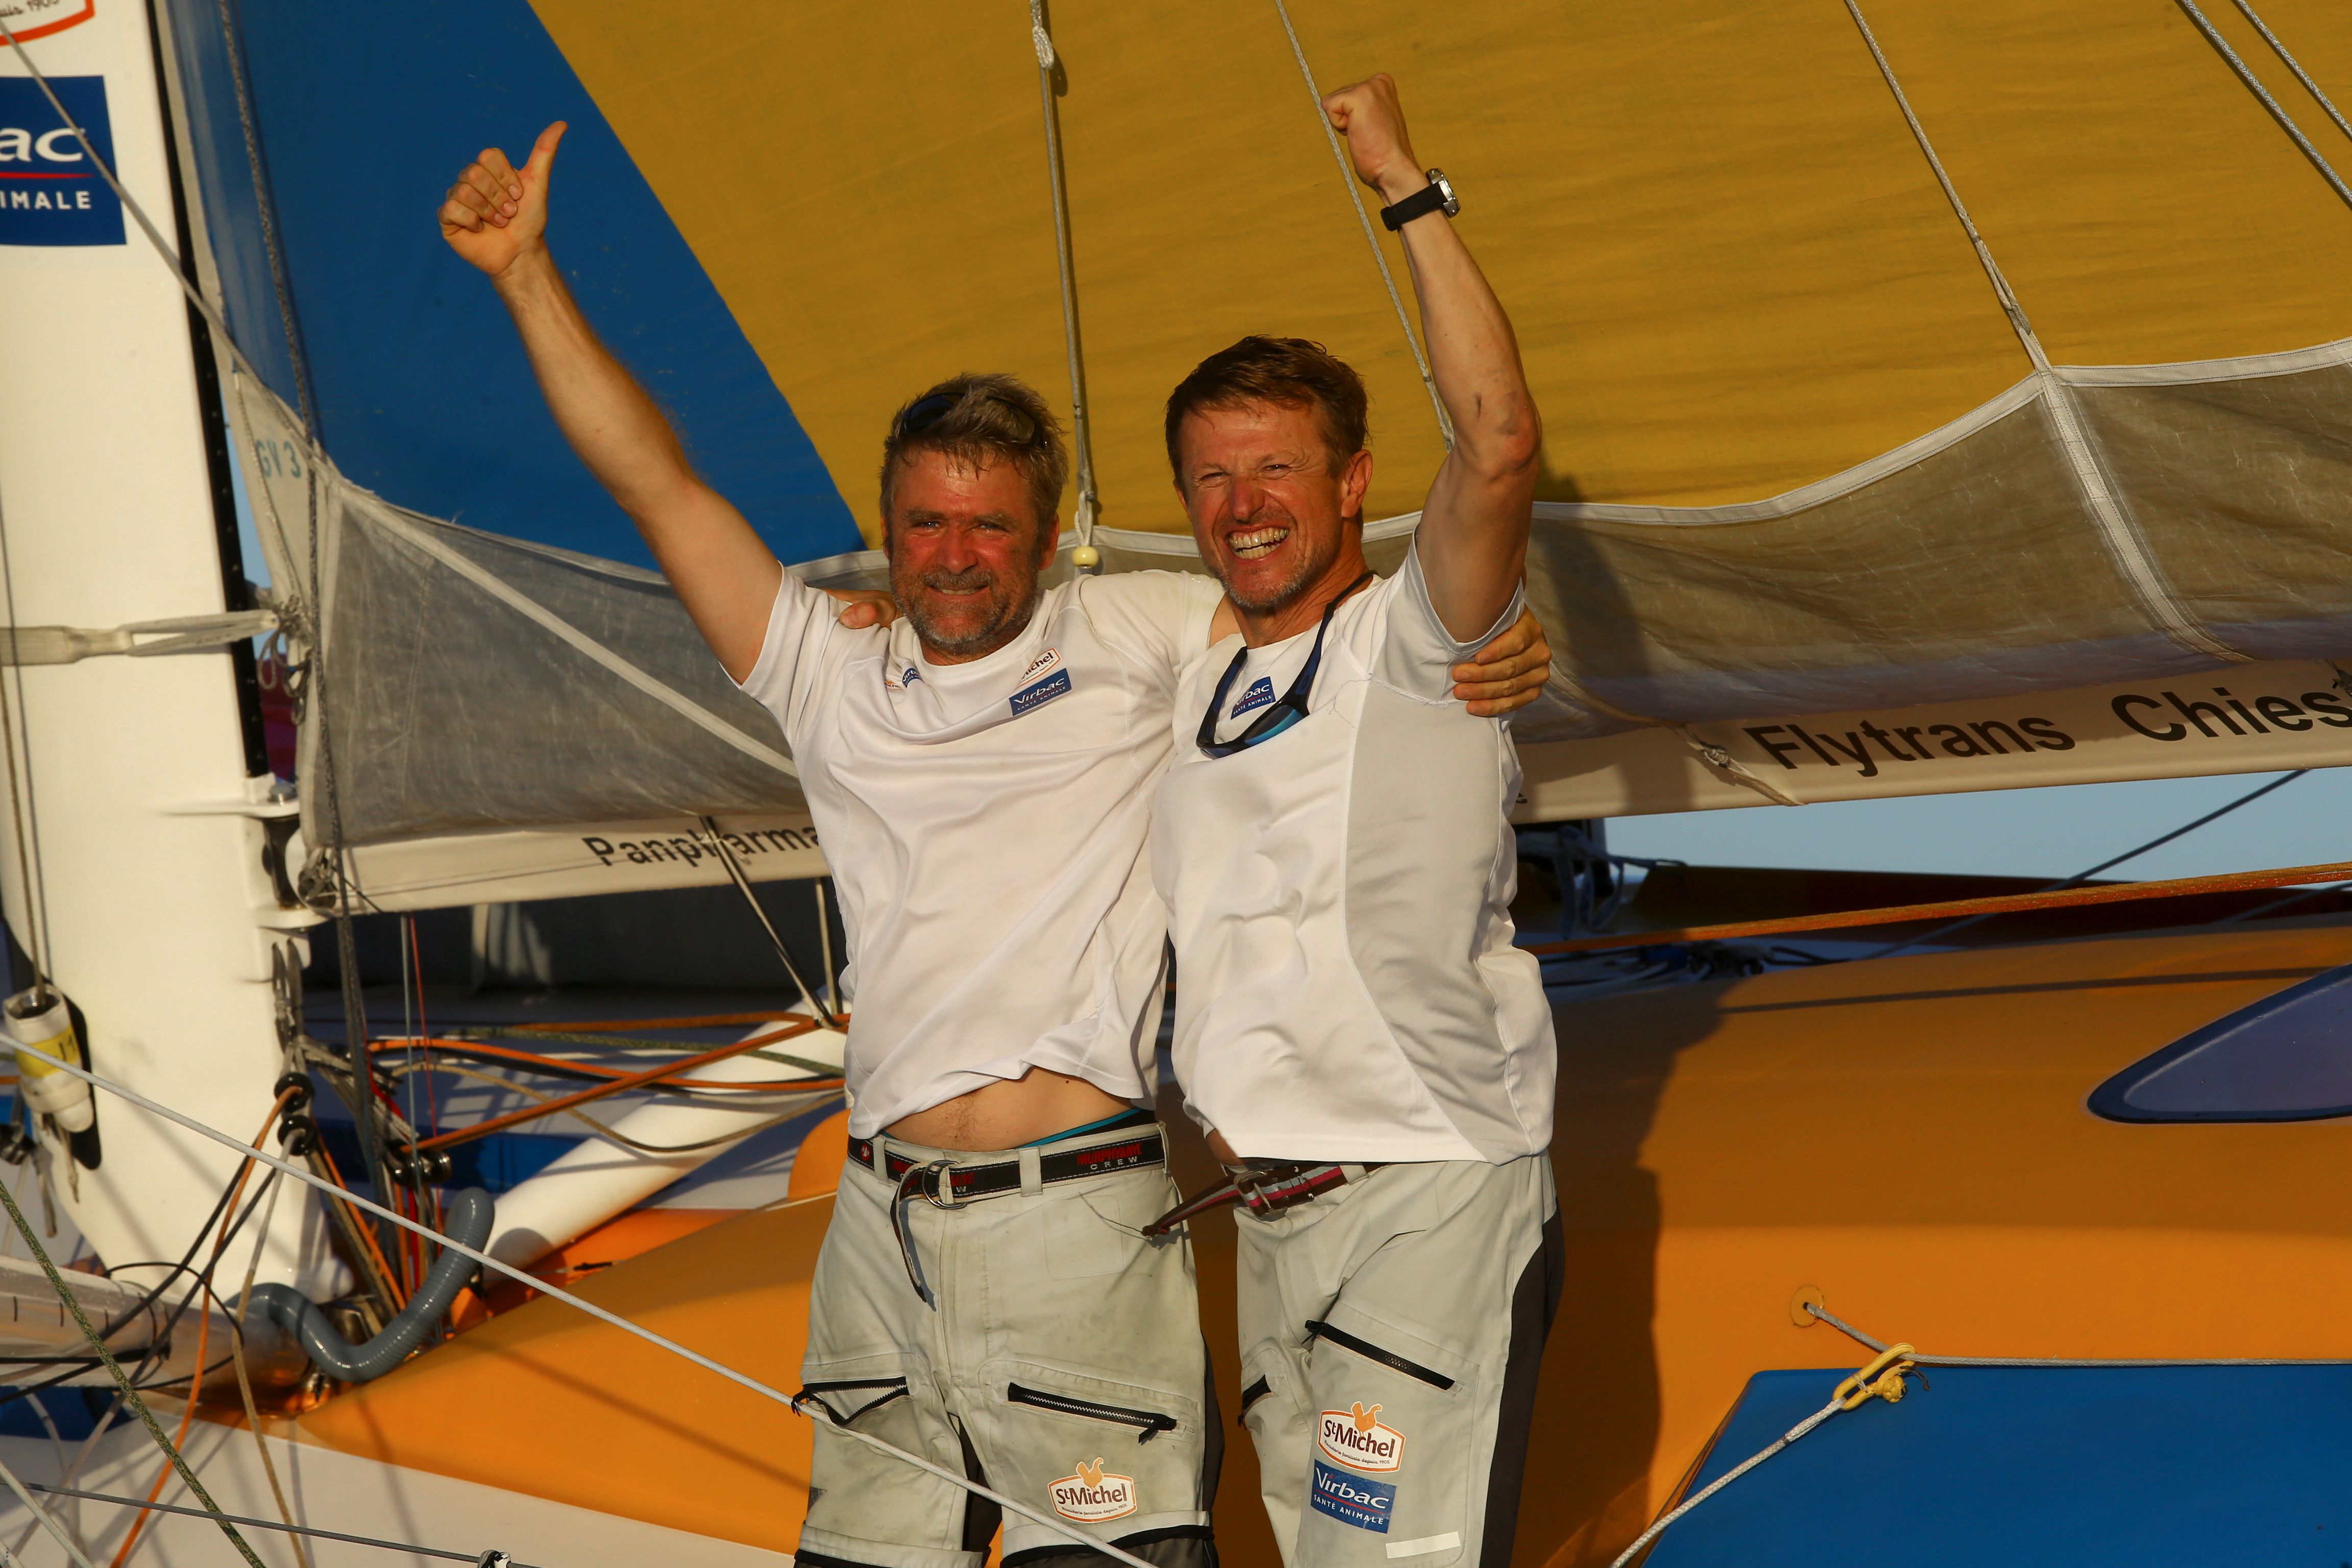 Winner in Imoca category for St Michel - Virbac, skippers Jean-Pierre Dick and Yann Elies, in 13d 7h 36mn 46s, during arrivals of the duo sailing race Transat Jacques Vabre 2017 from Le Havre (FRA) to Salvador de Bahia (BRA), on November 18th, 2017 -